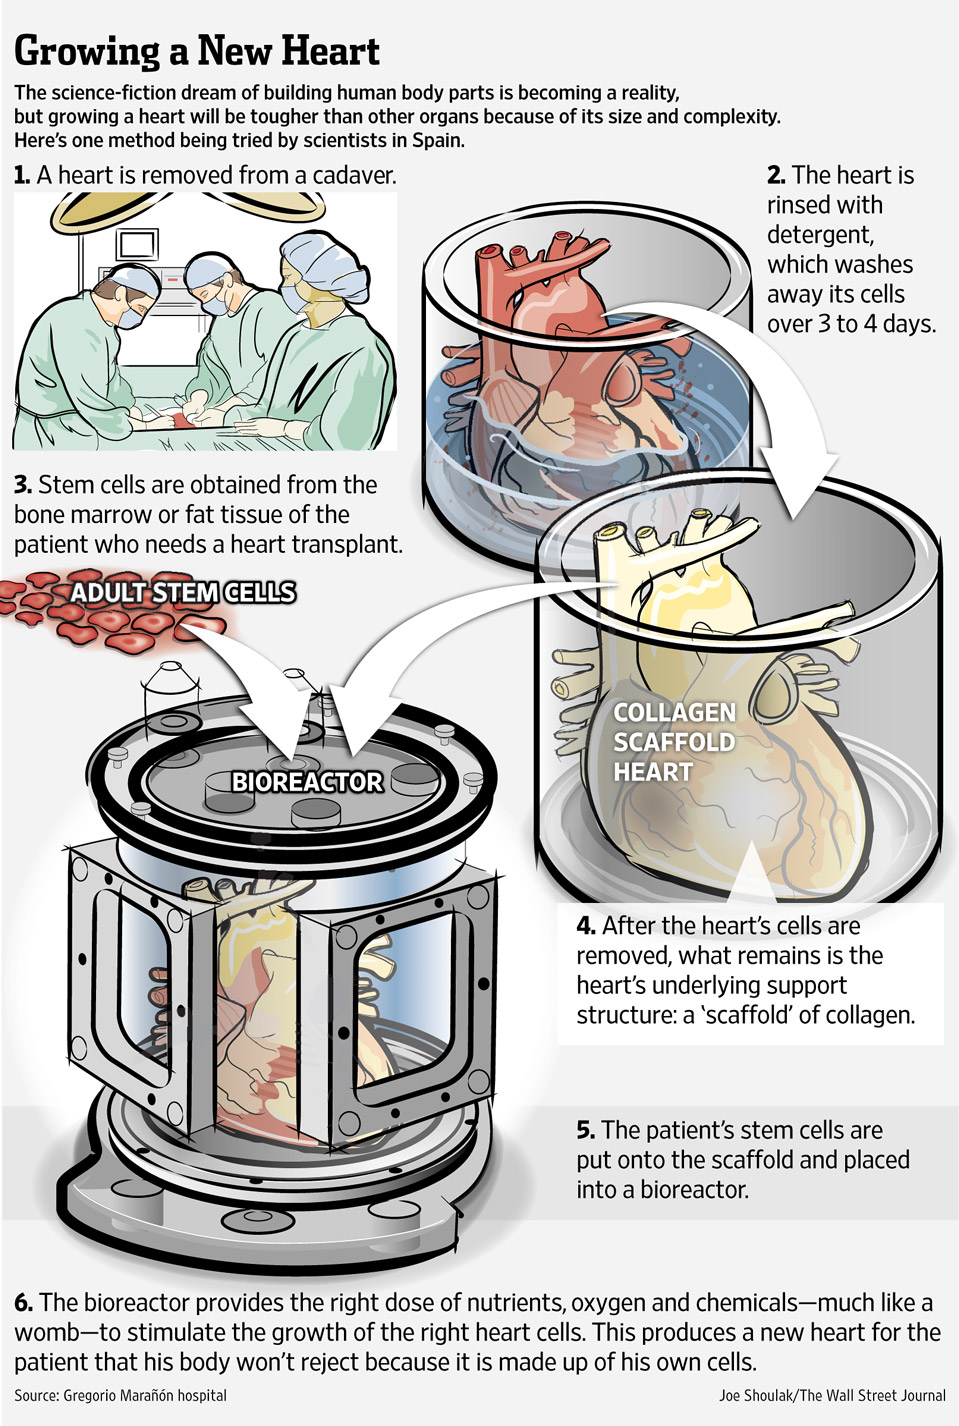 Using stem cells to grow a human heart